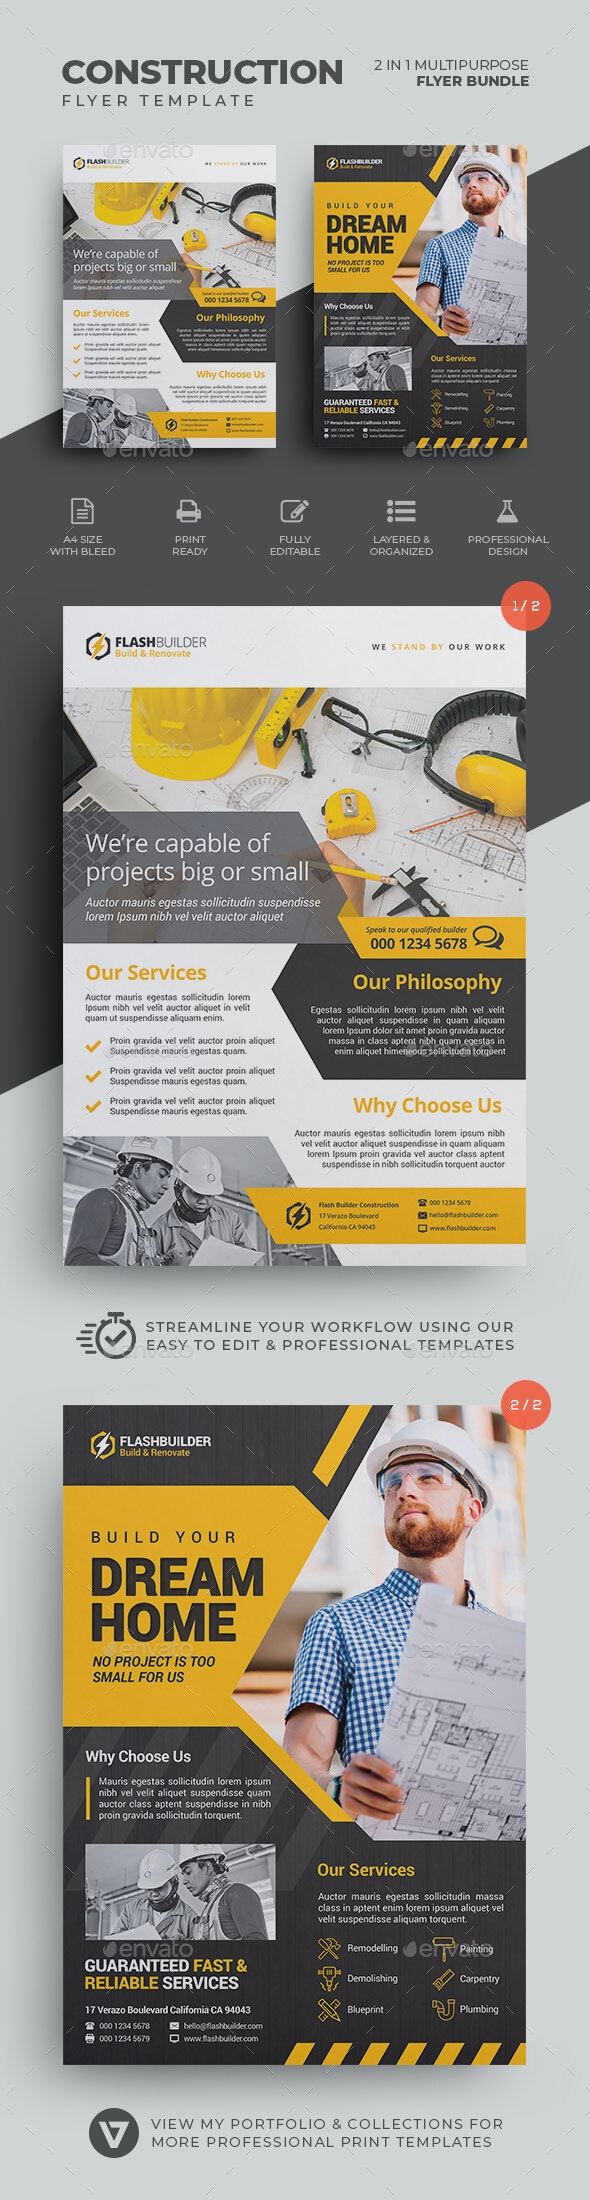 Construction Flyer Bundle - Corporate Flyers